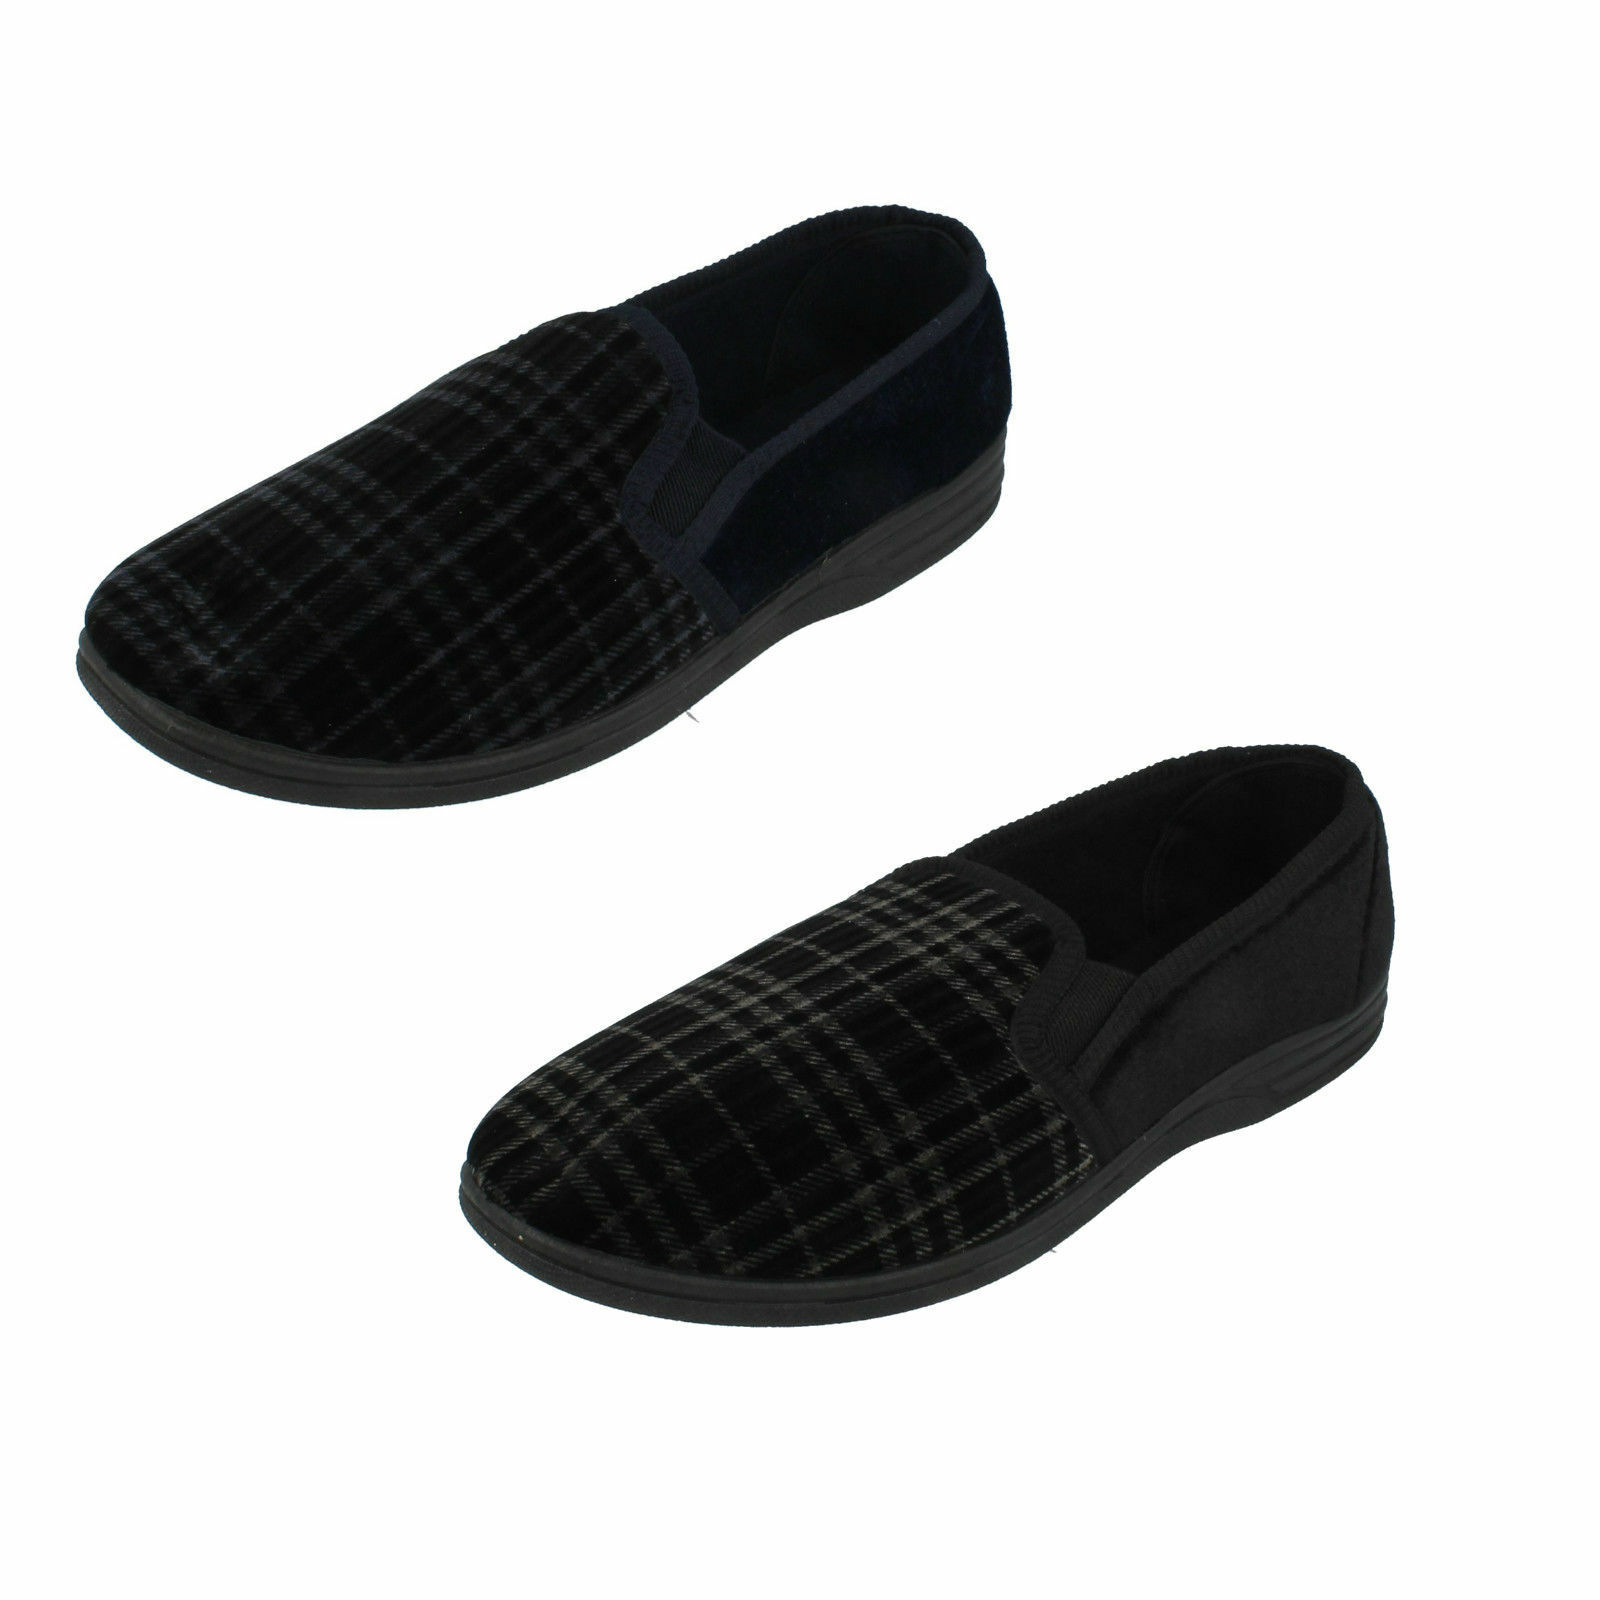 MENS QUALITY SLIPPERS SLIP ON TWO SIDE MS60 GUSSETS INDOOR SHOES MOCCASINS MS60 SIDE fe925b